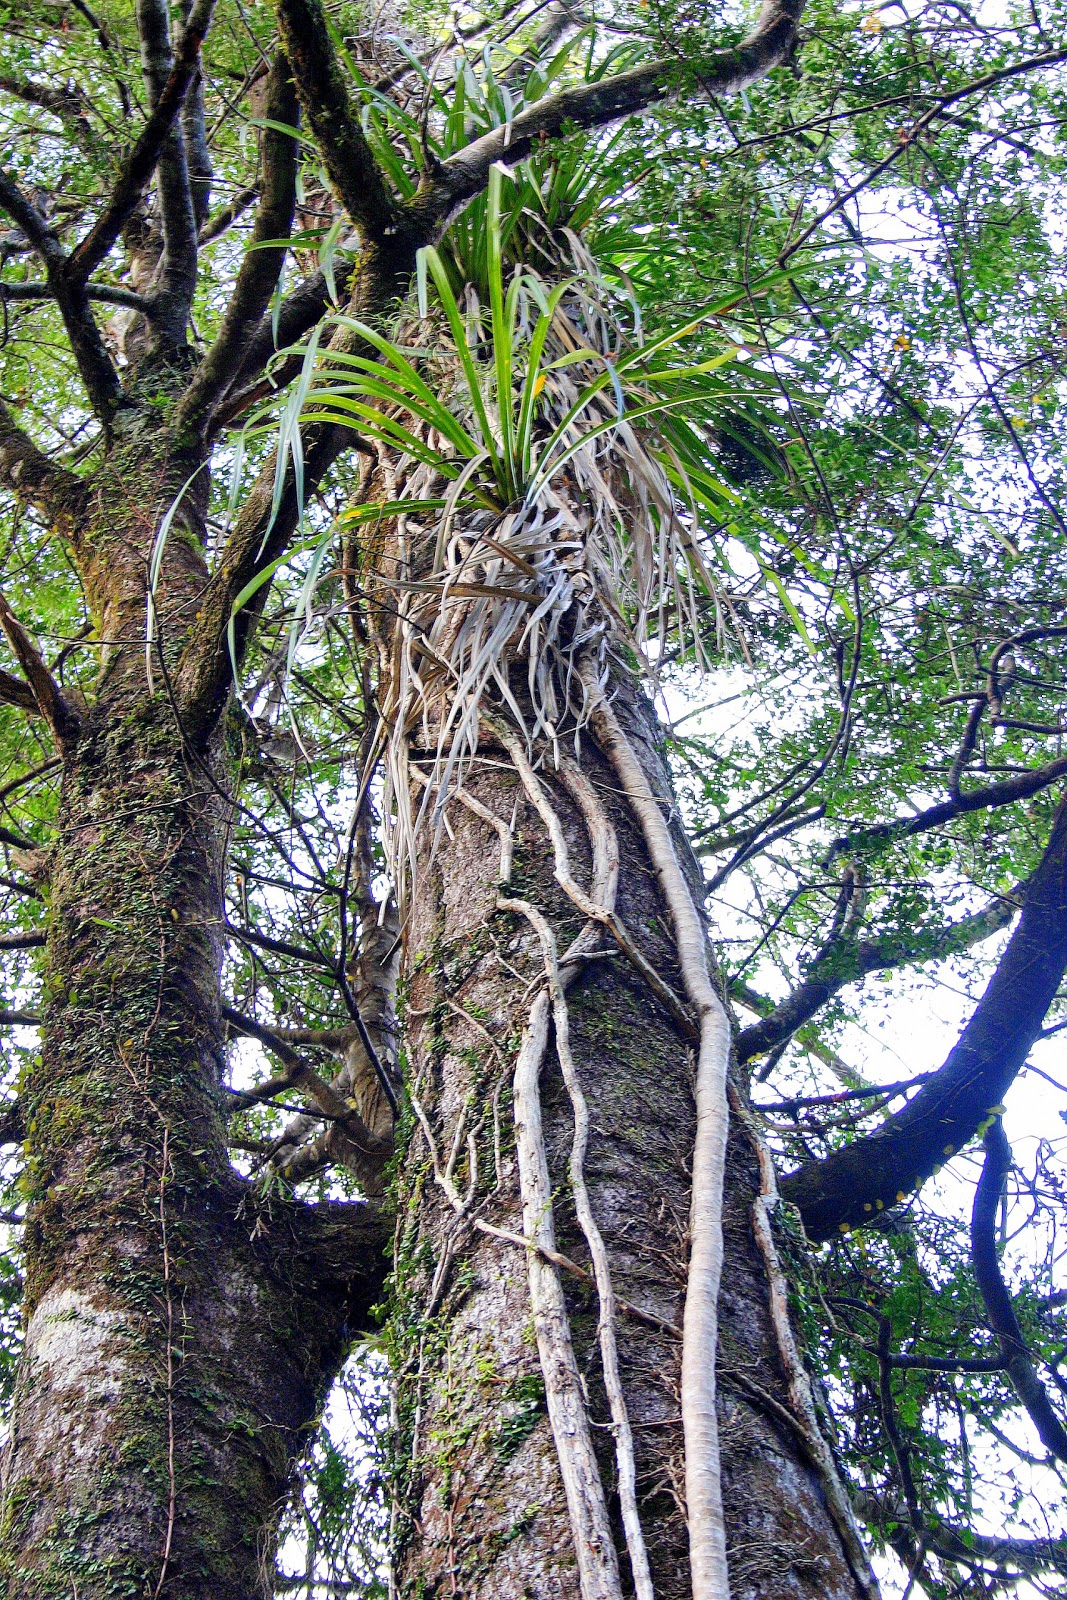 Liana A Woody Climbing Plant That Grows From The Ground